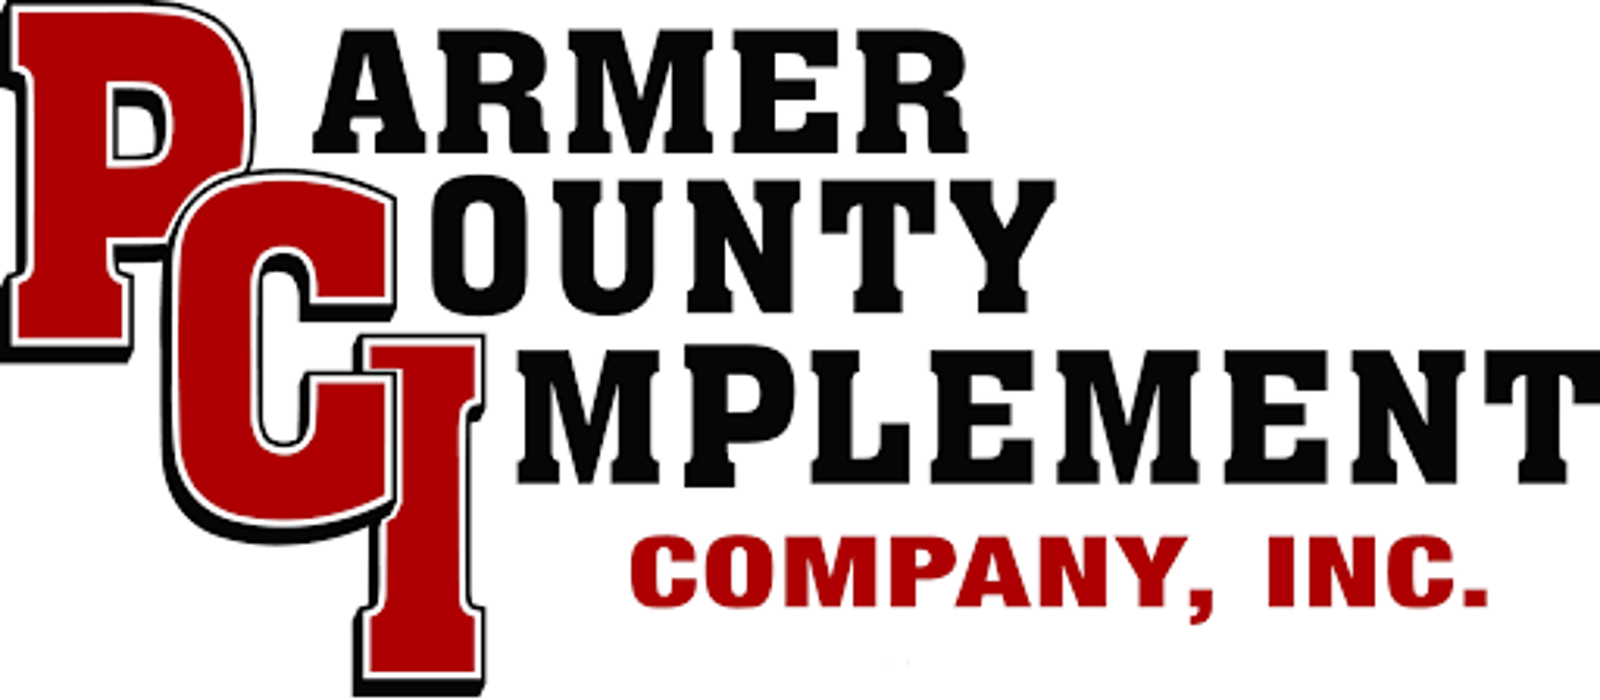 Parmer County Implement Co.